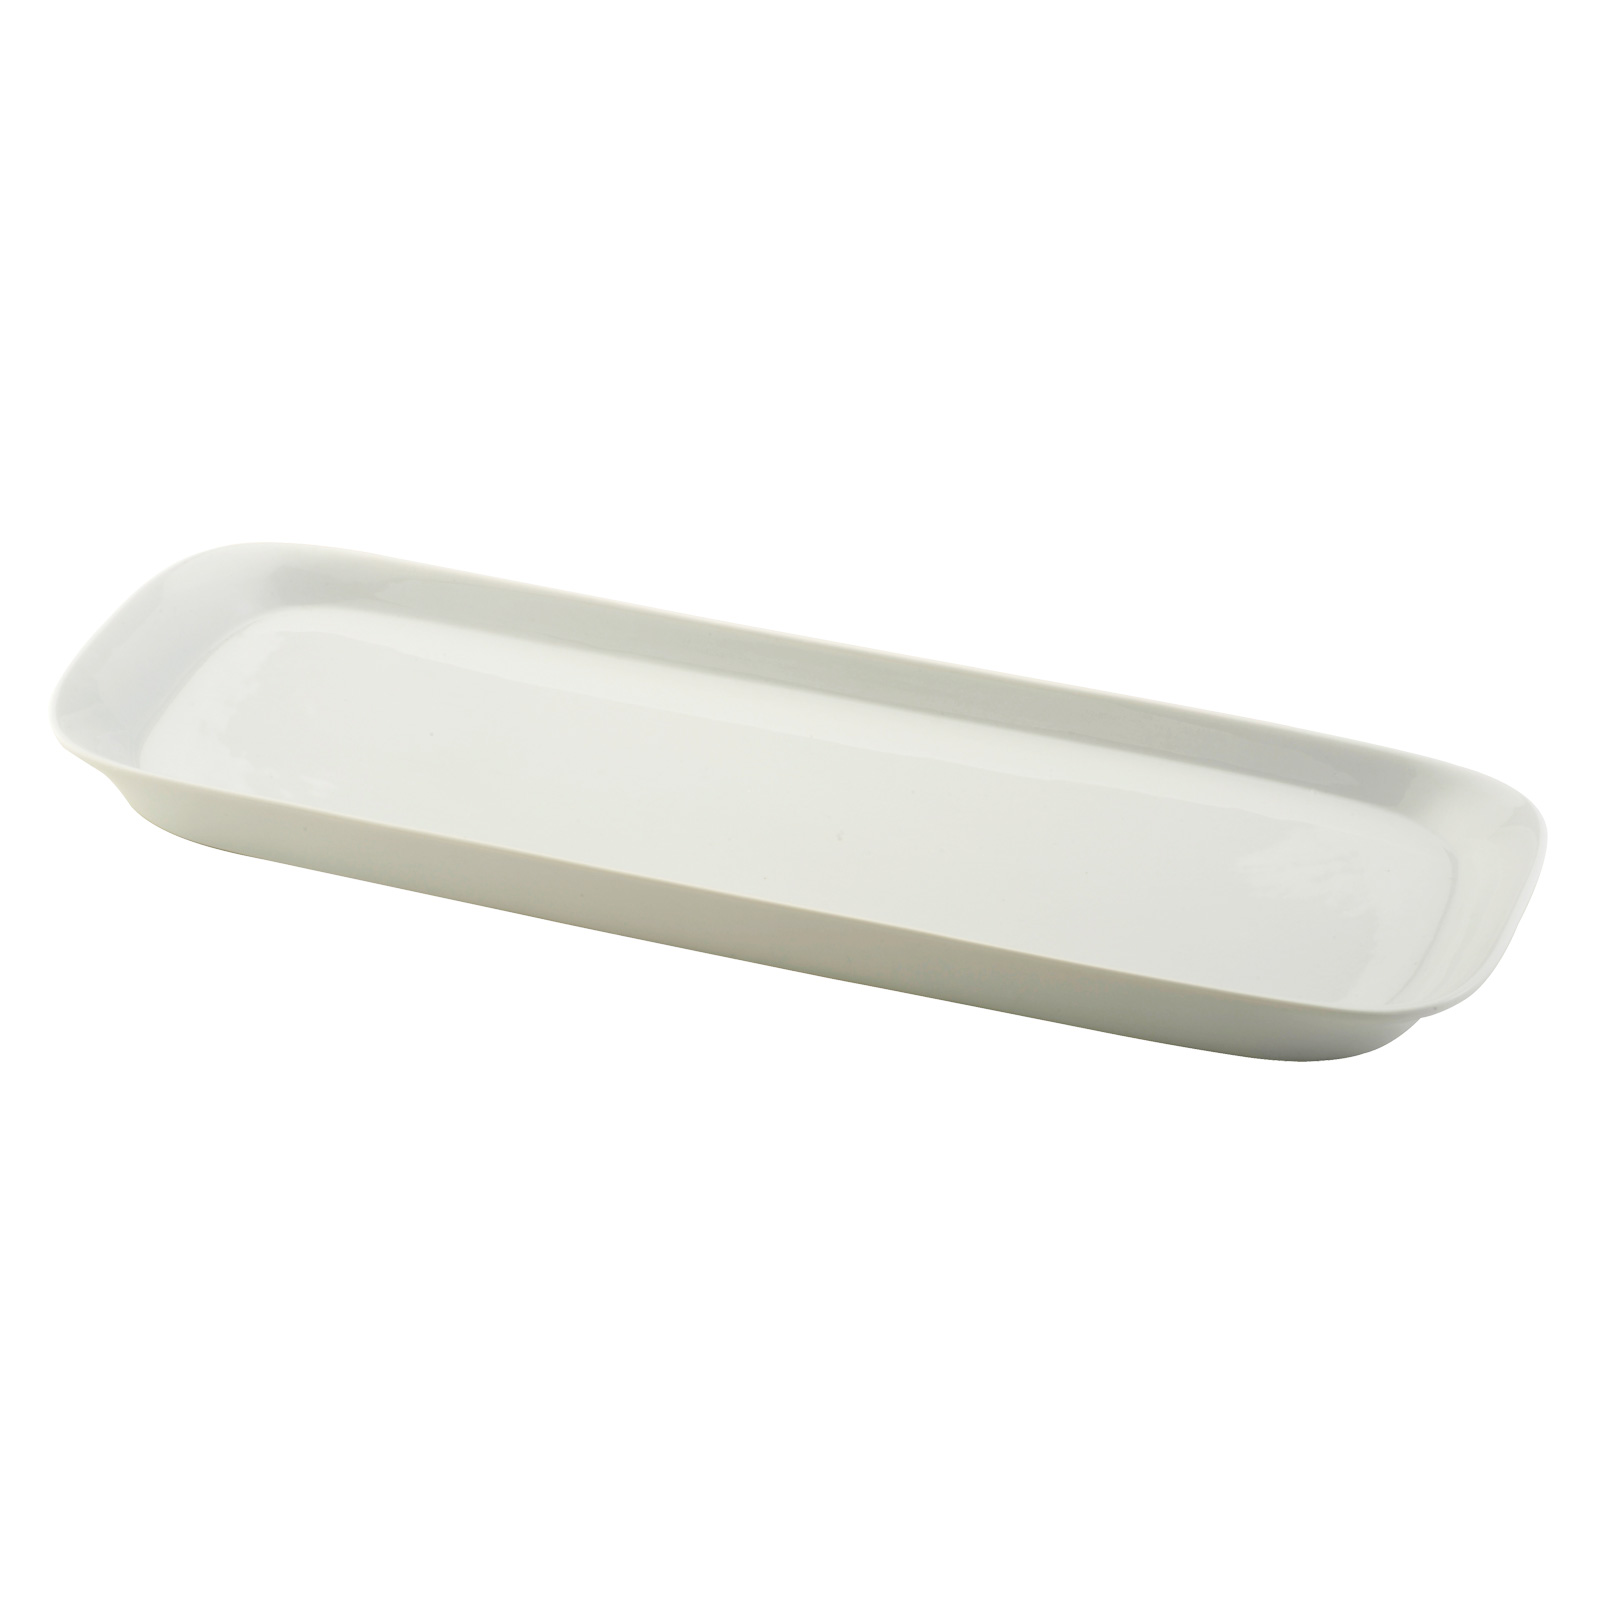 Oblong Platter Small by BIA